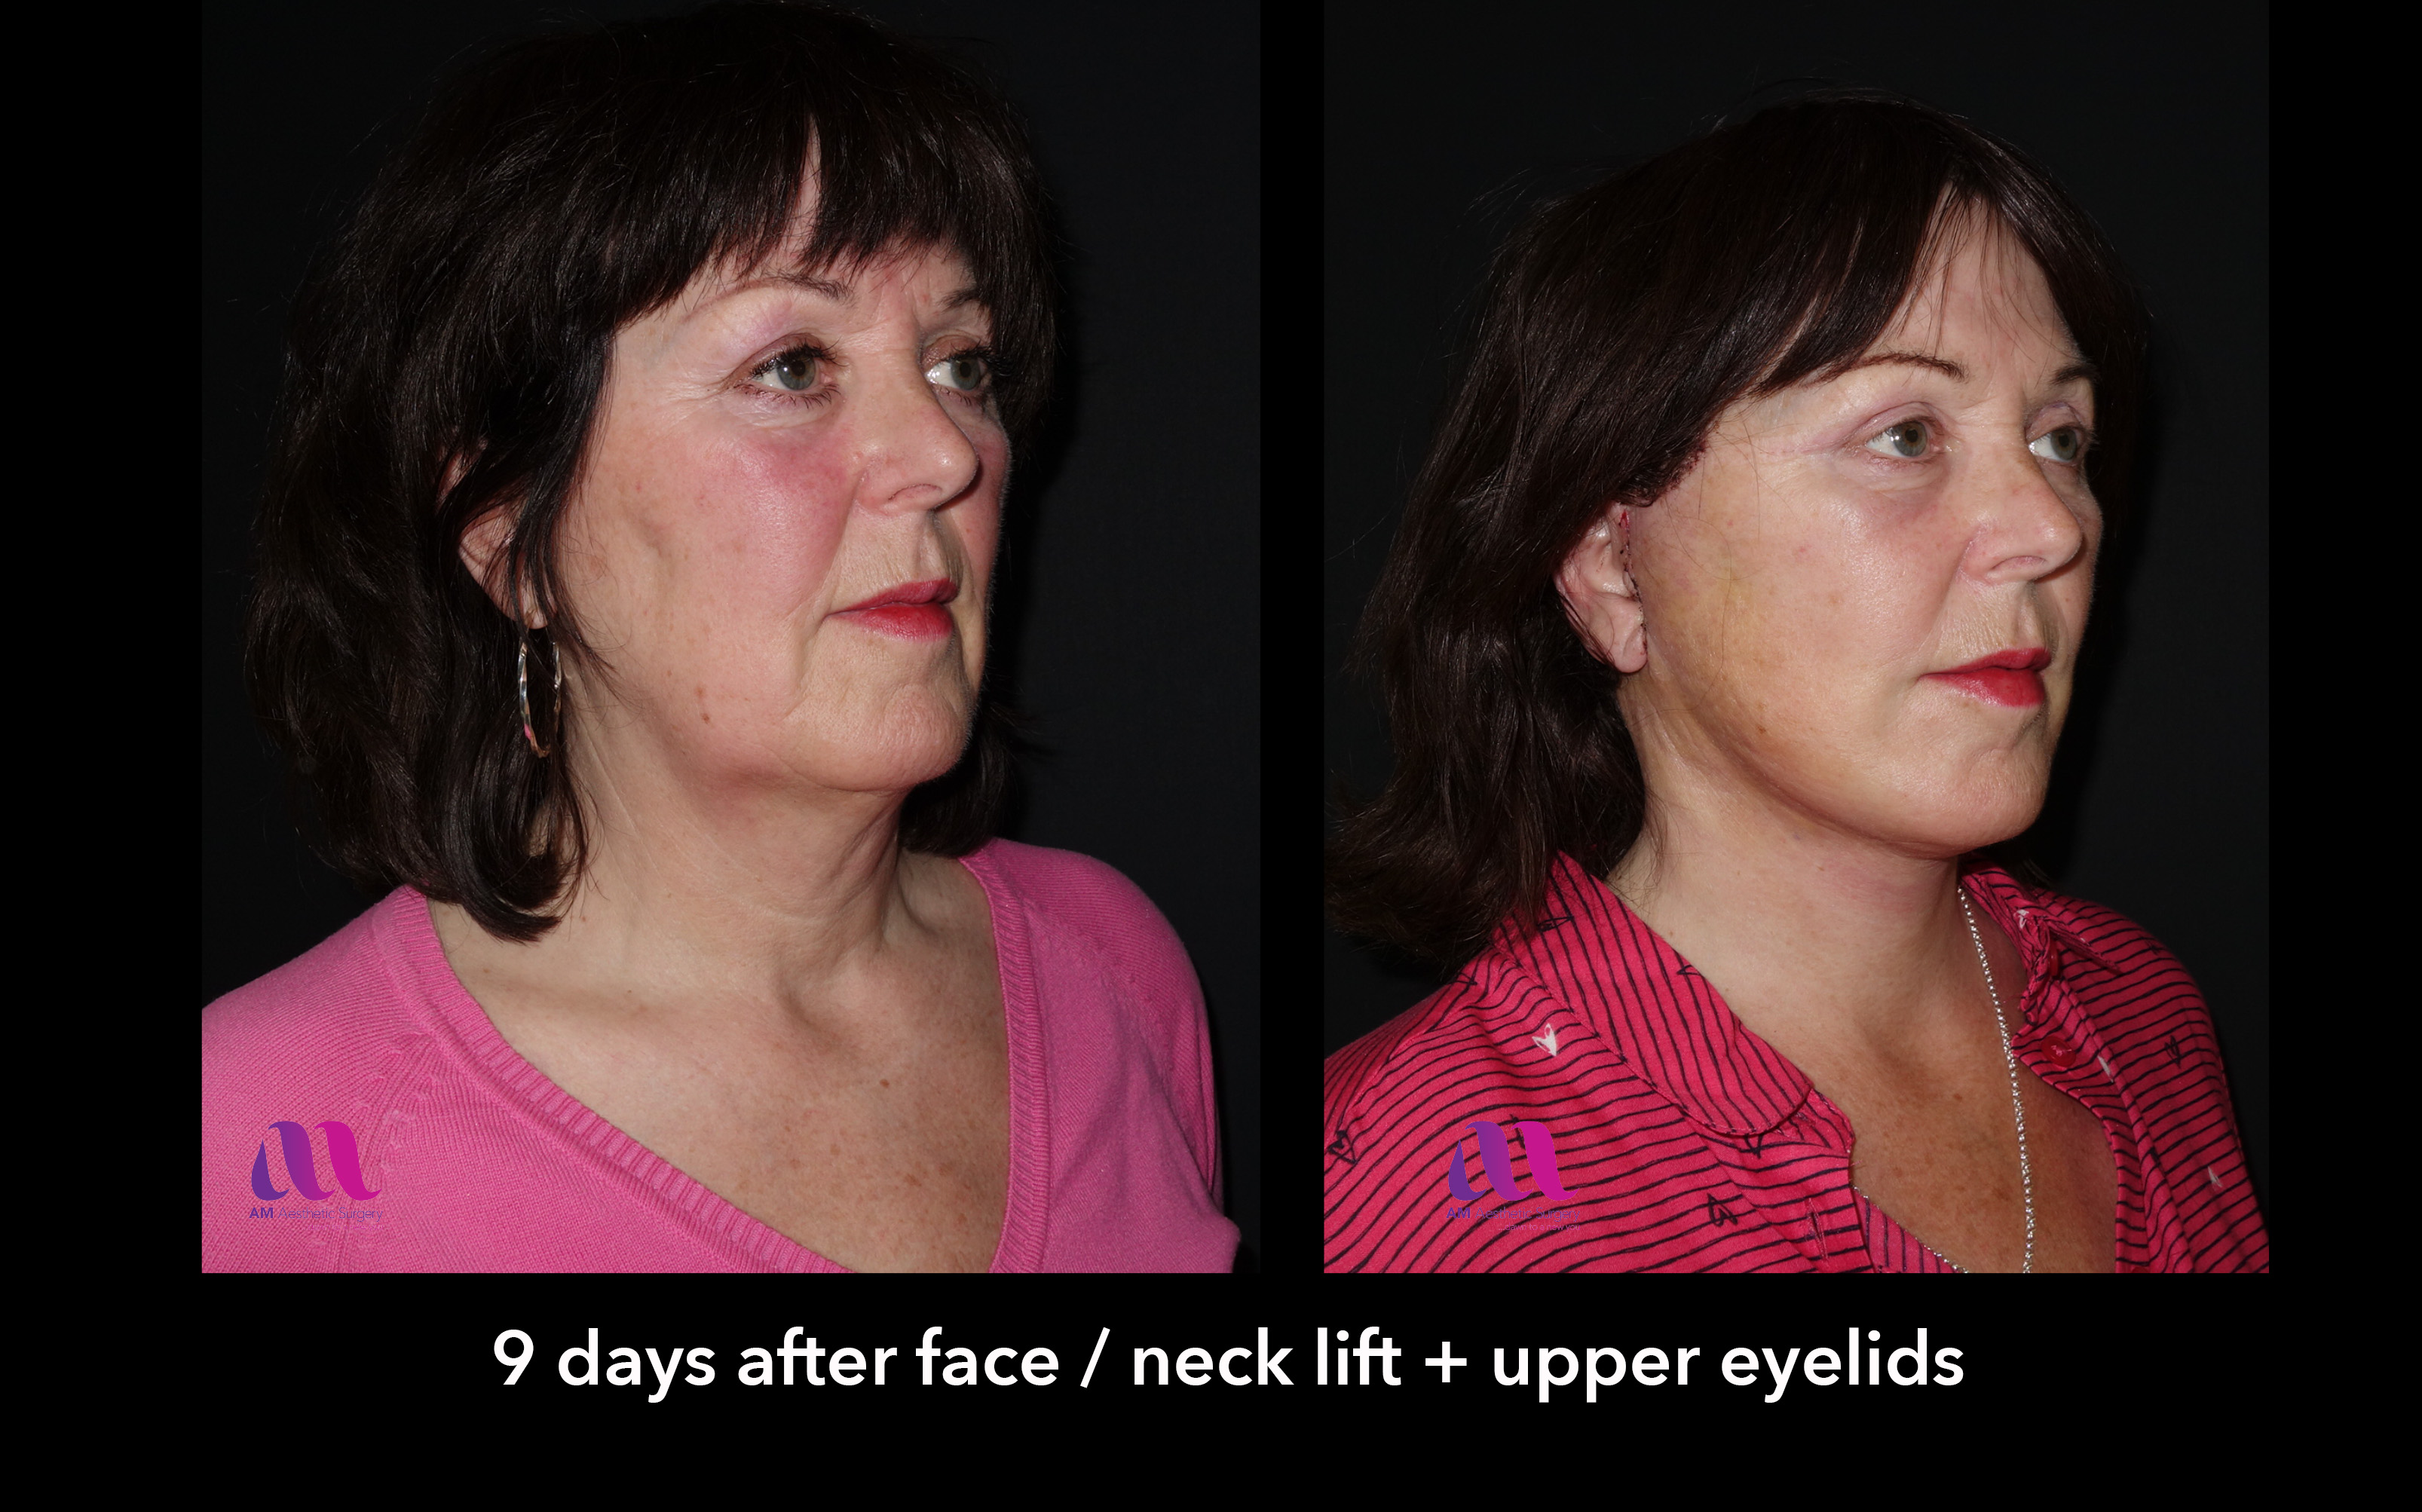 Face Lift +Upp Eyelids10b